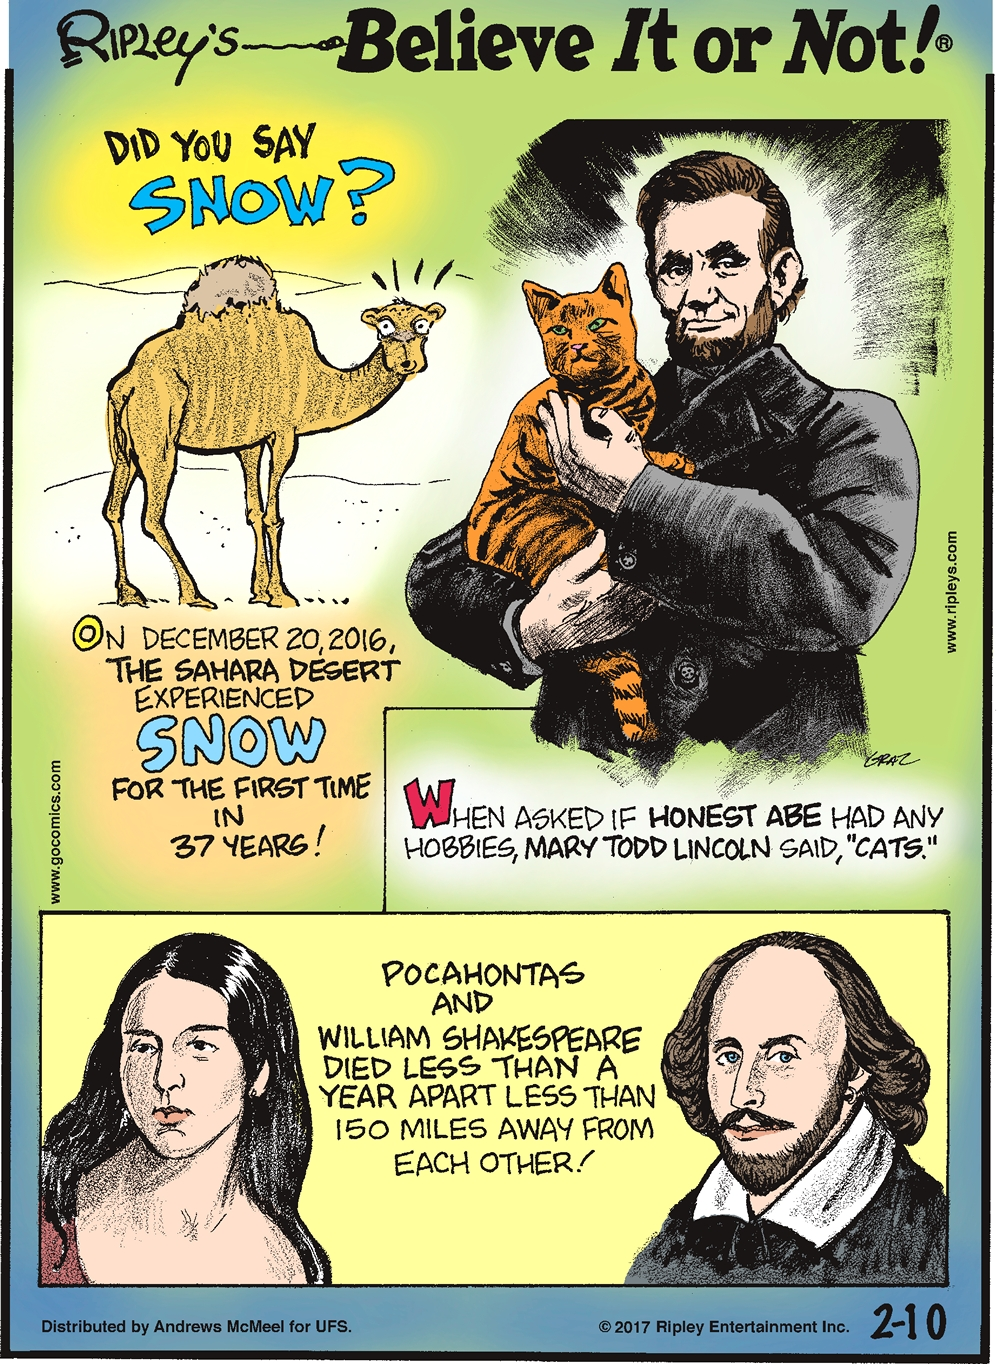 "On December 20, 2016, the Sahara Desert experienced snow for the first time in 37 years!--------------------- When asked if Honest Abe had any hobbies, Mary Todd Lincoln said, ""Cats.""------------------- Pocahontas and William Shakespeare died less than a year apart less than 150 miles from each other!"